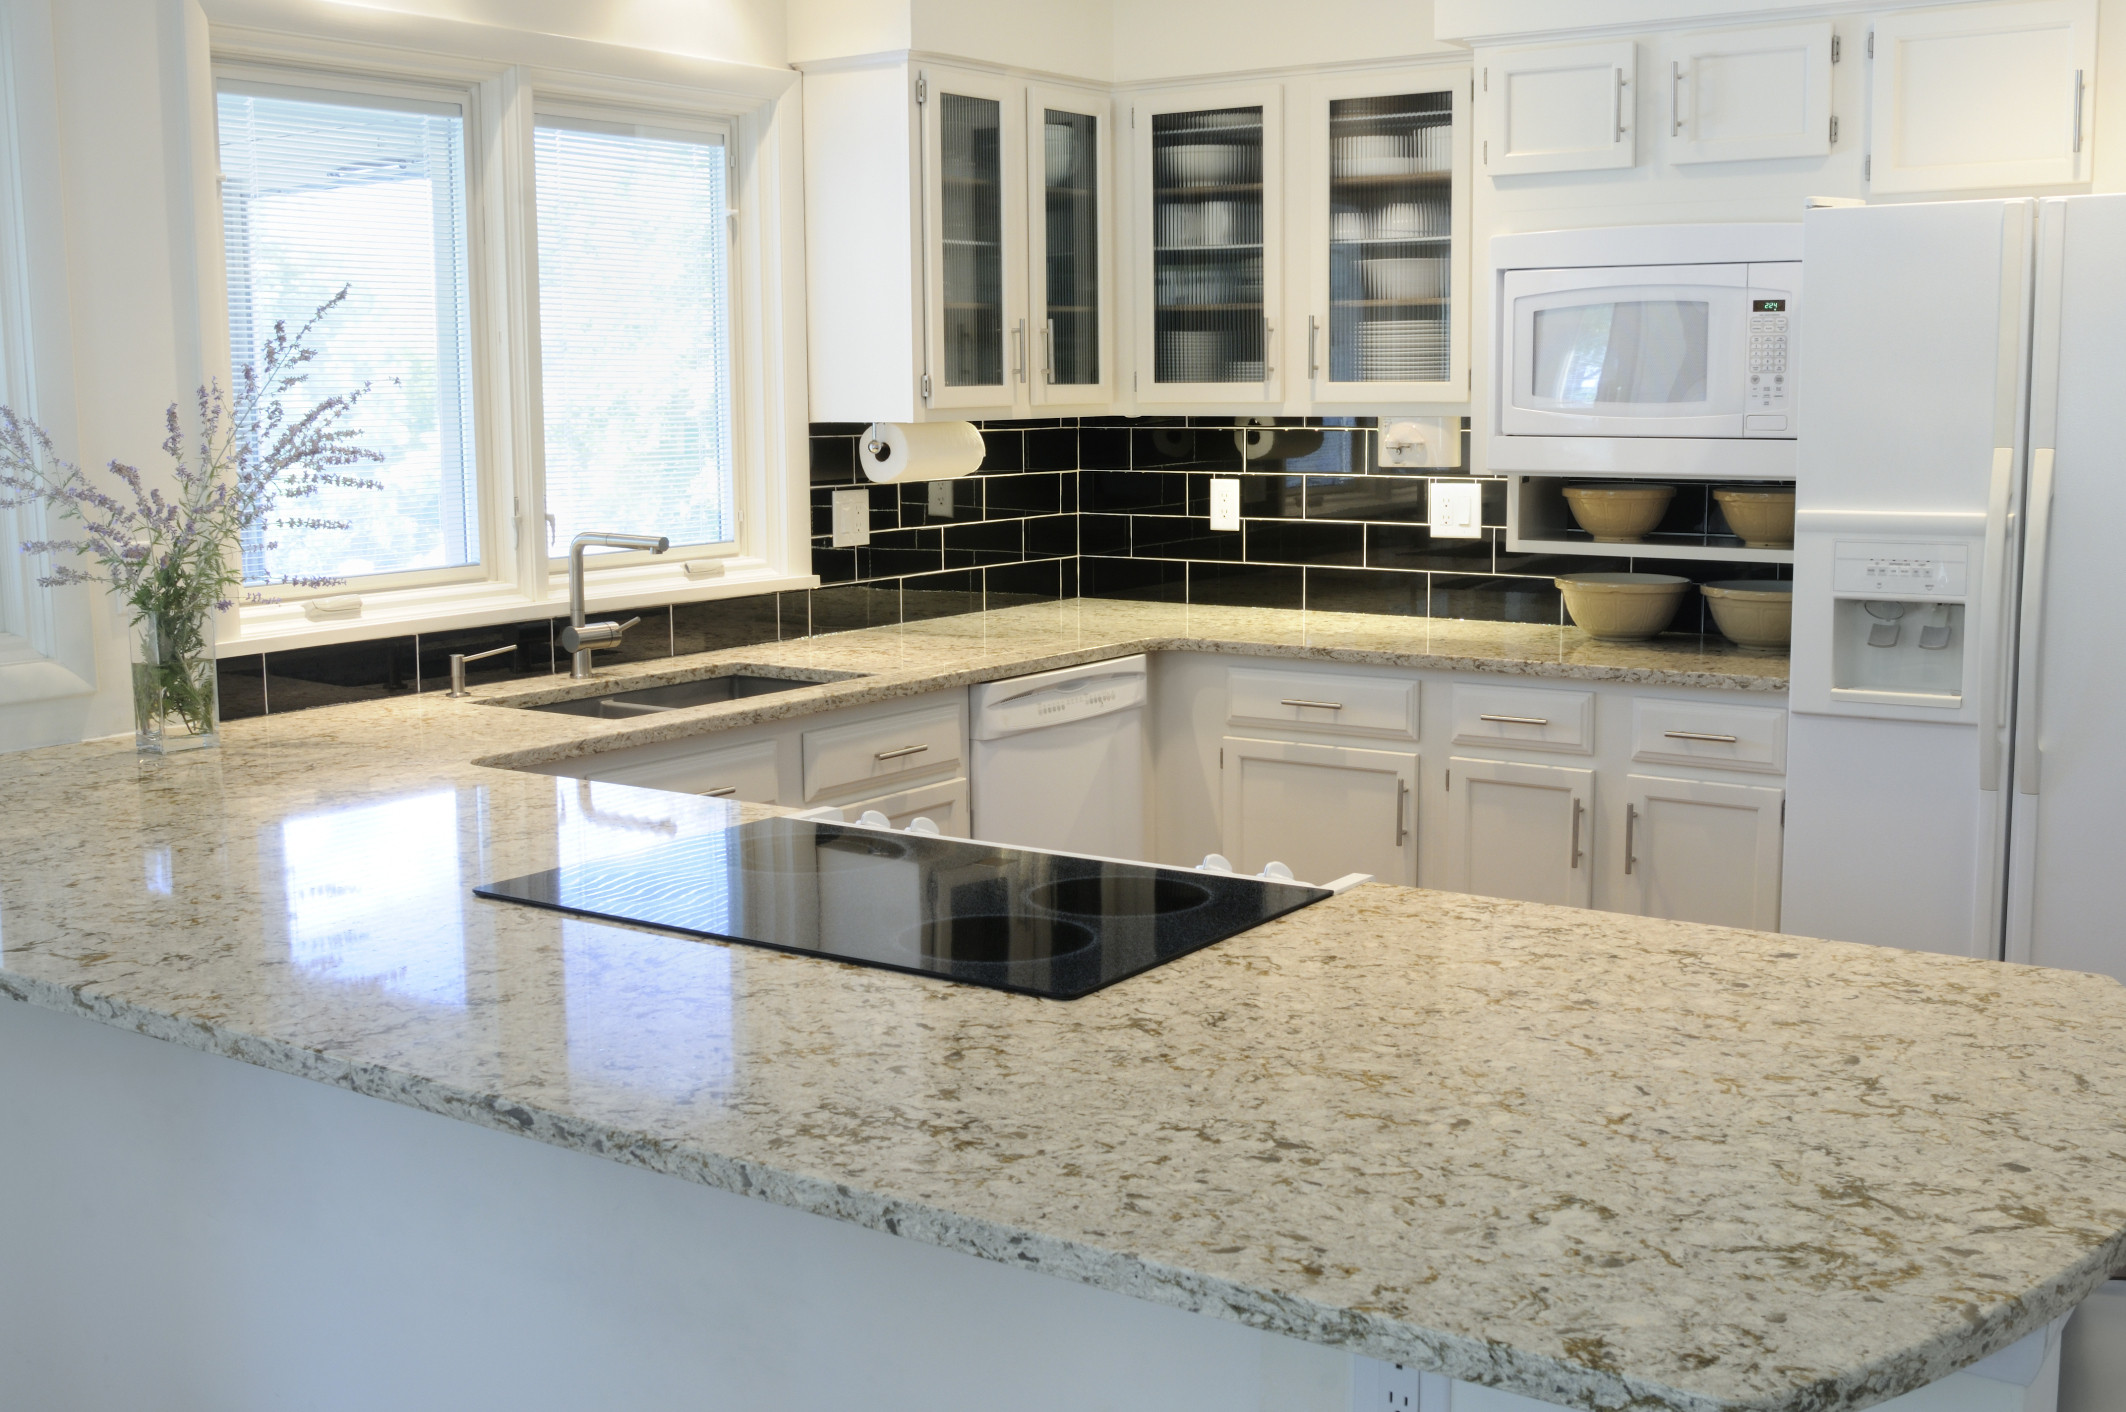 Granite Kitchens 10 Reasons To Let Go Of The Granite Obsession Already Huffpost